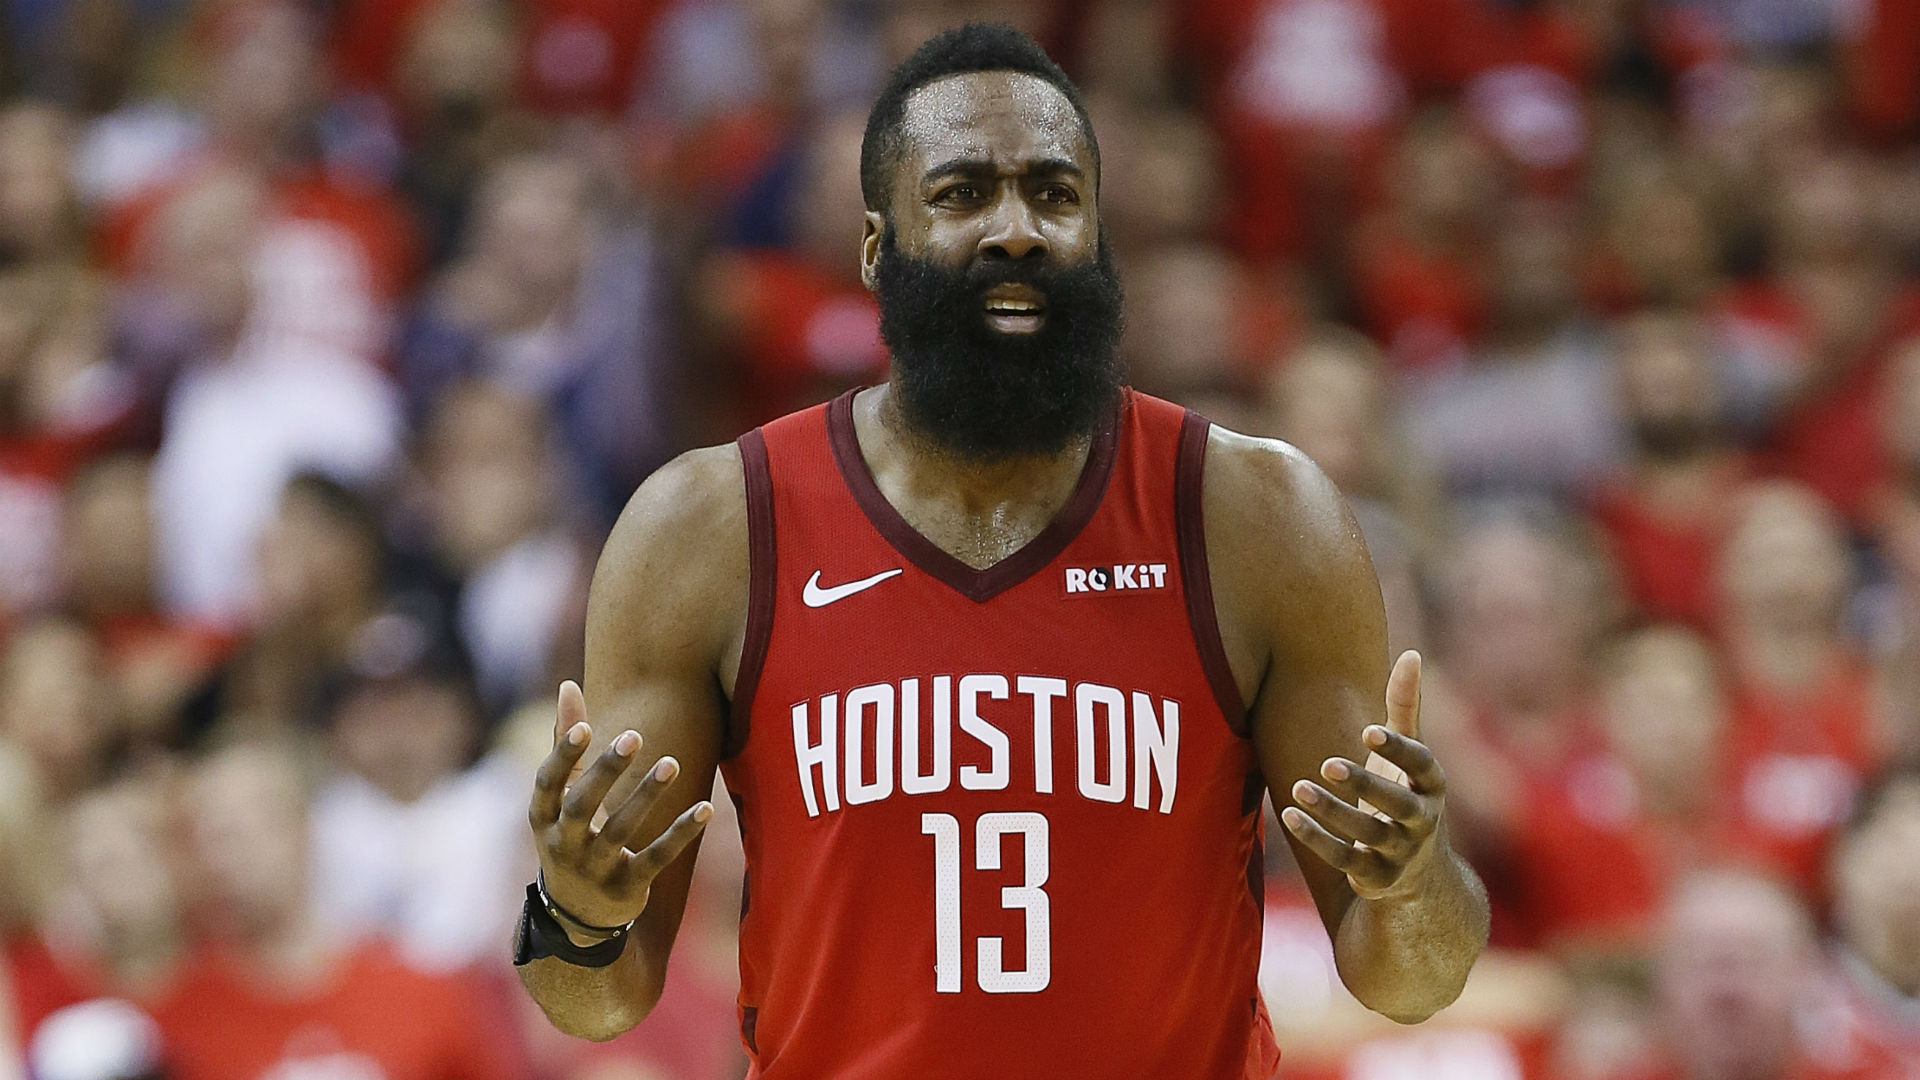 Rockets owner: We're going to win championships with James Harden